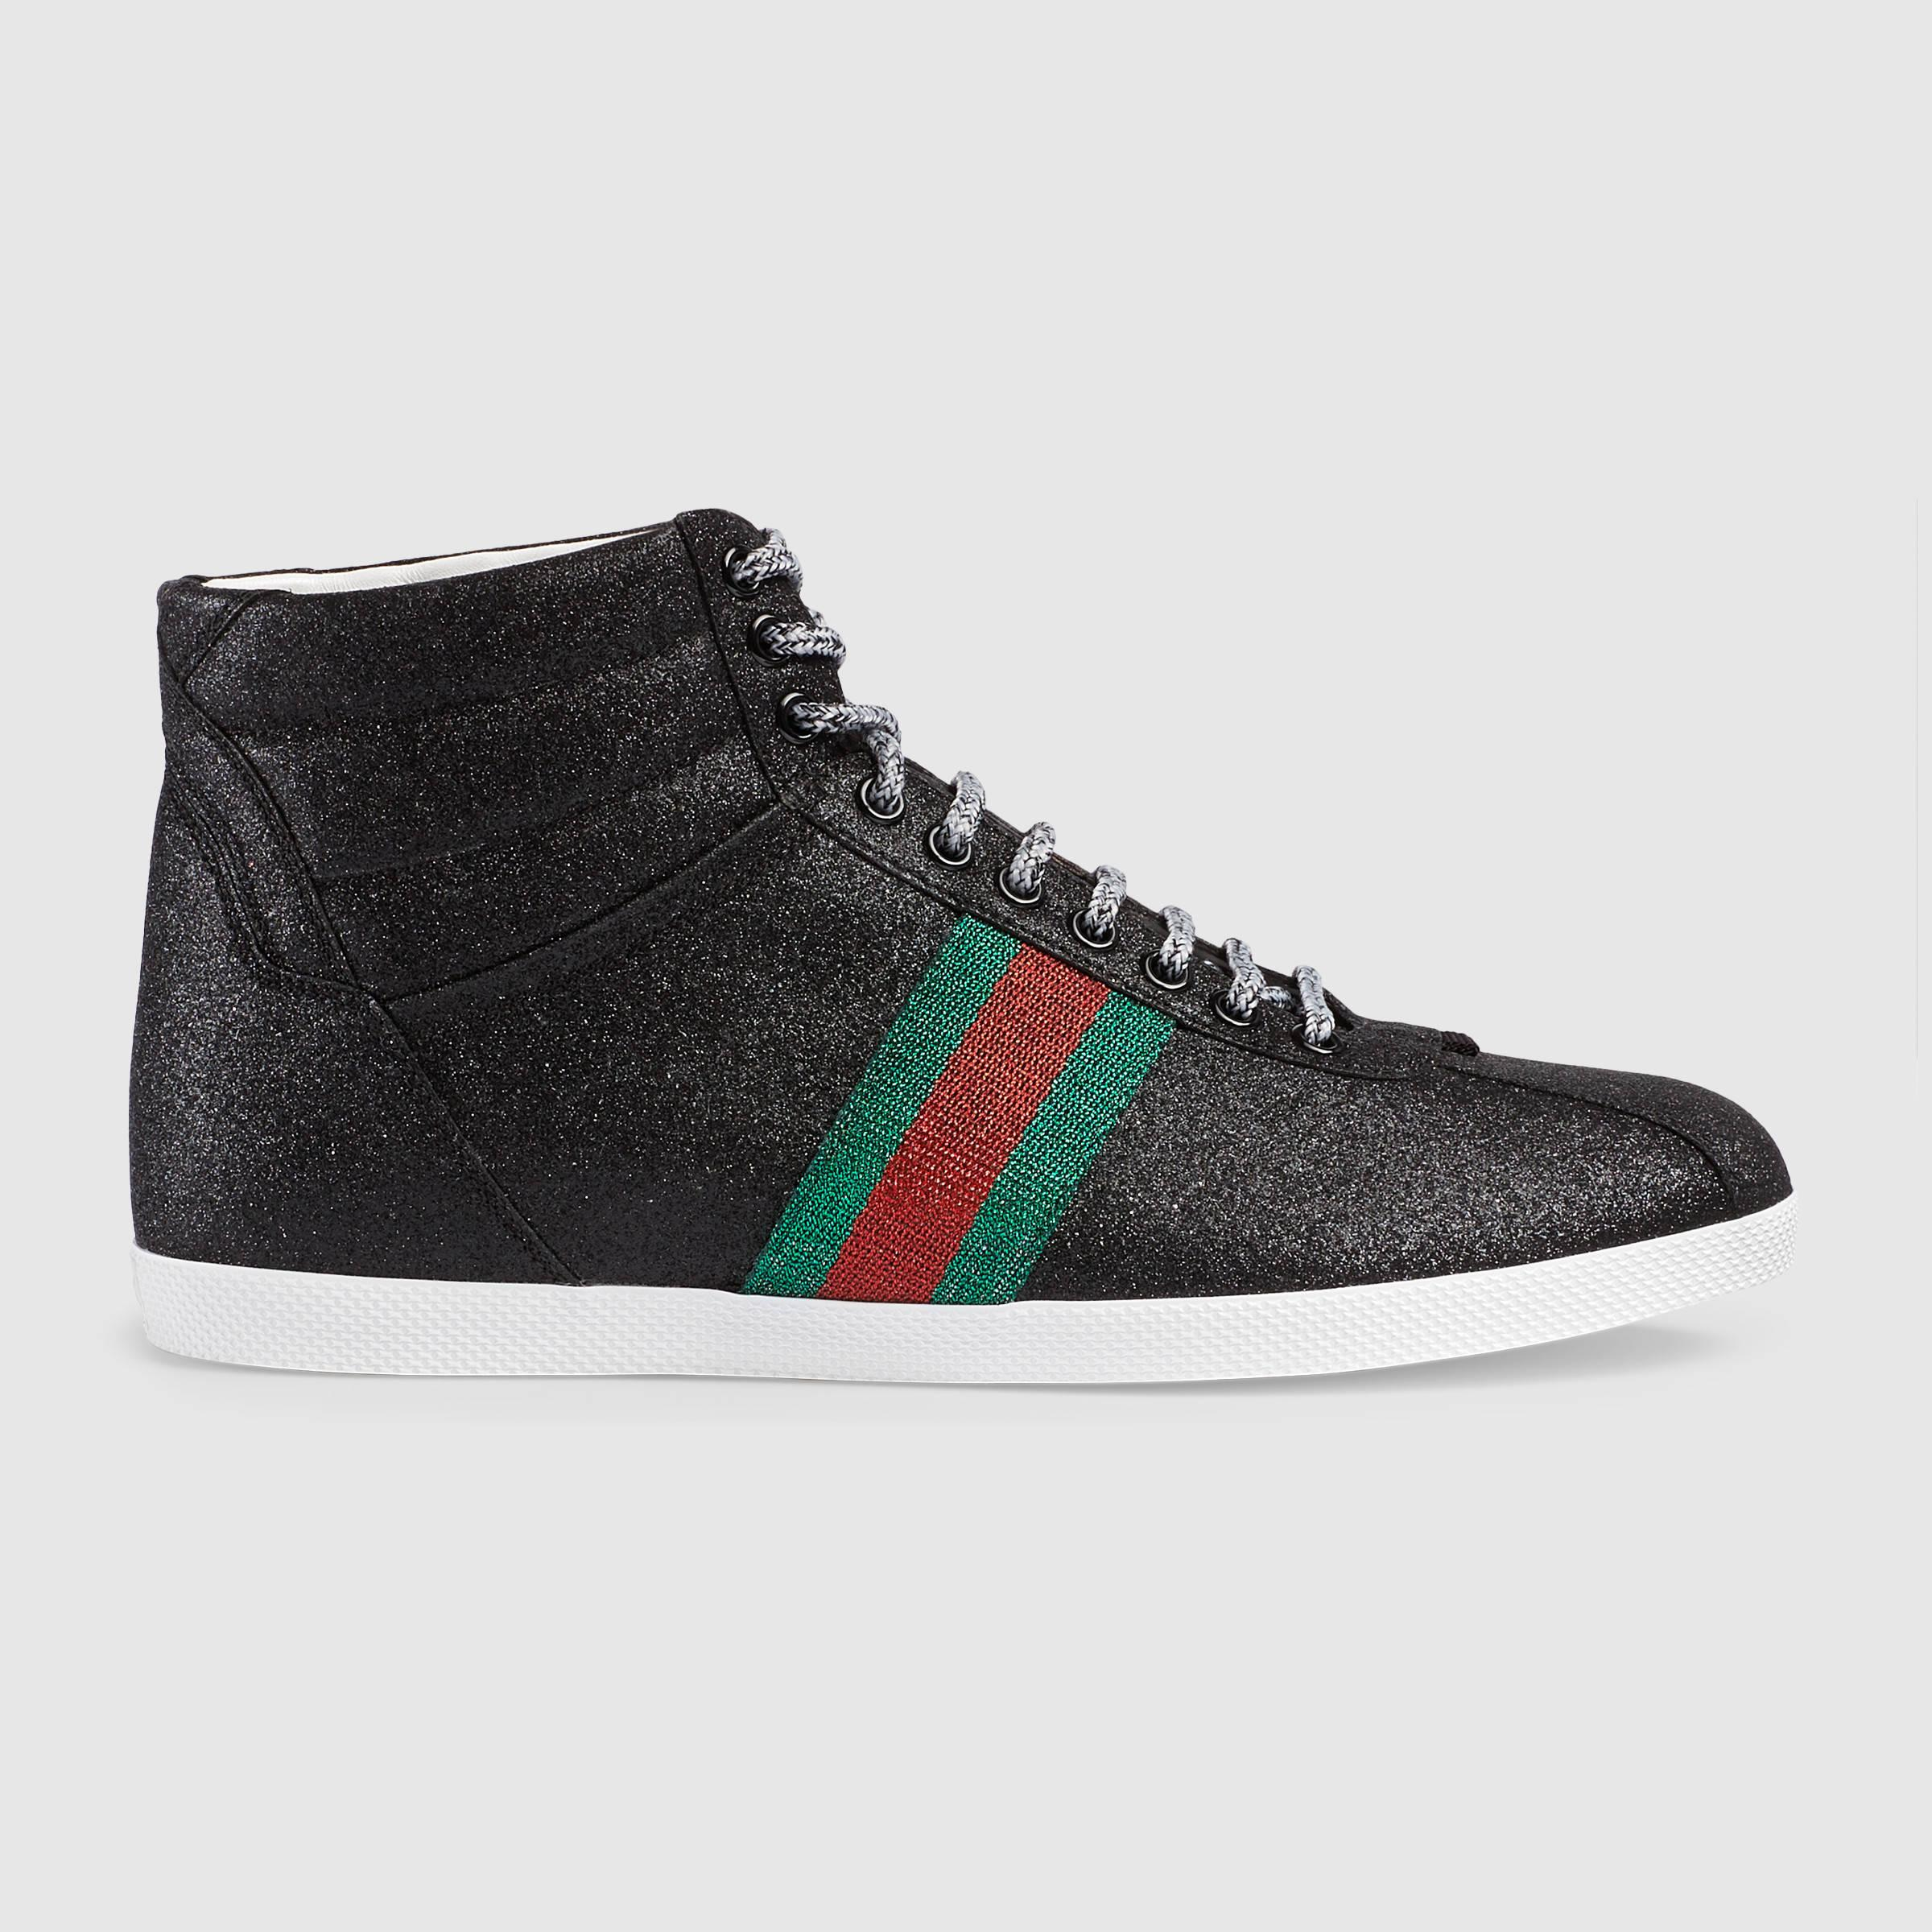 735718f77 Gucci Glitter Sneakers Black Related Keywords & Suggestions - Gucci ...